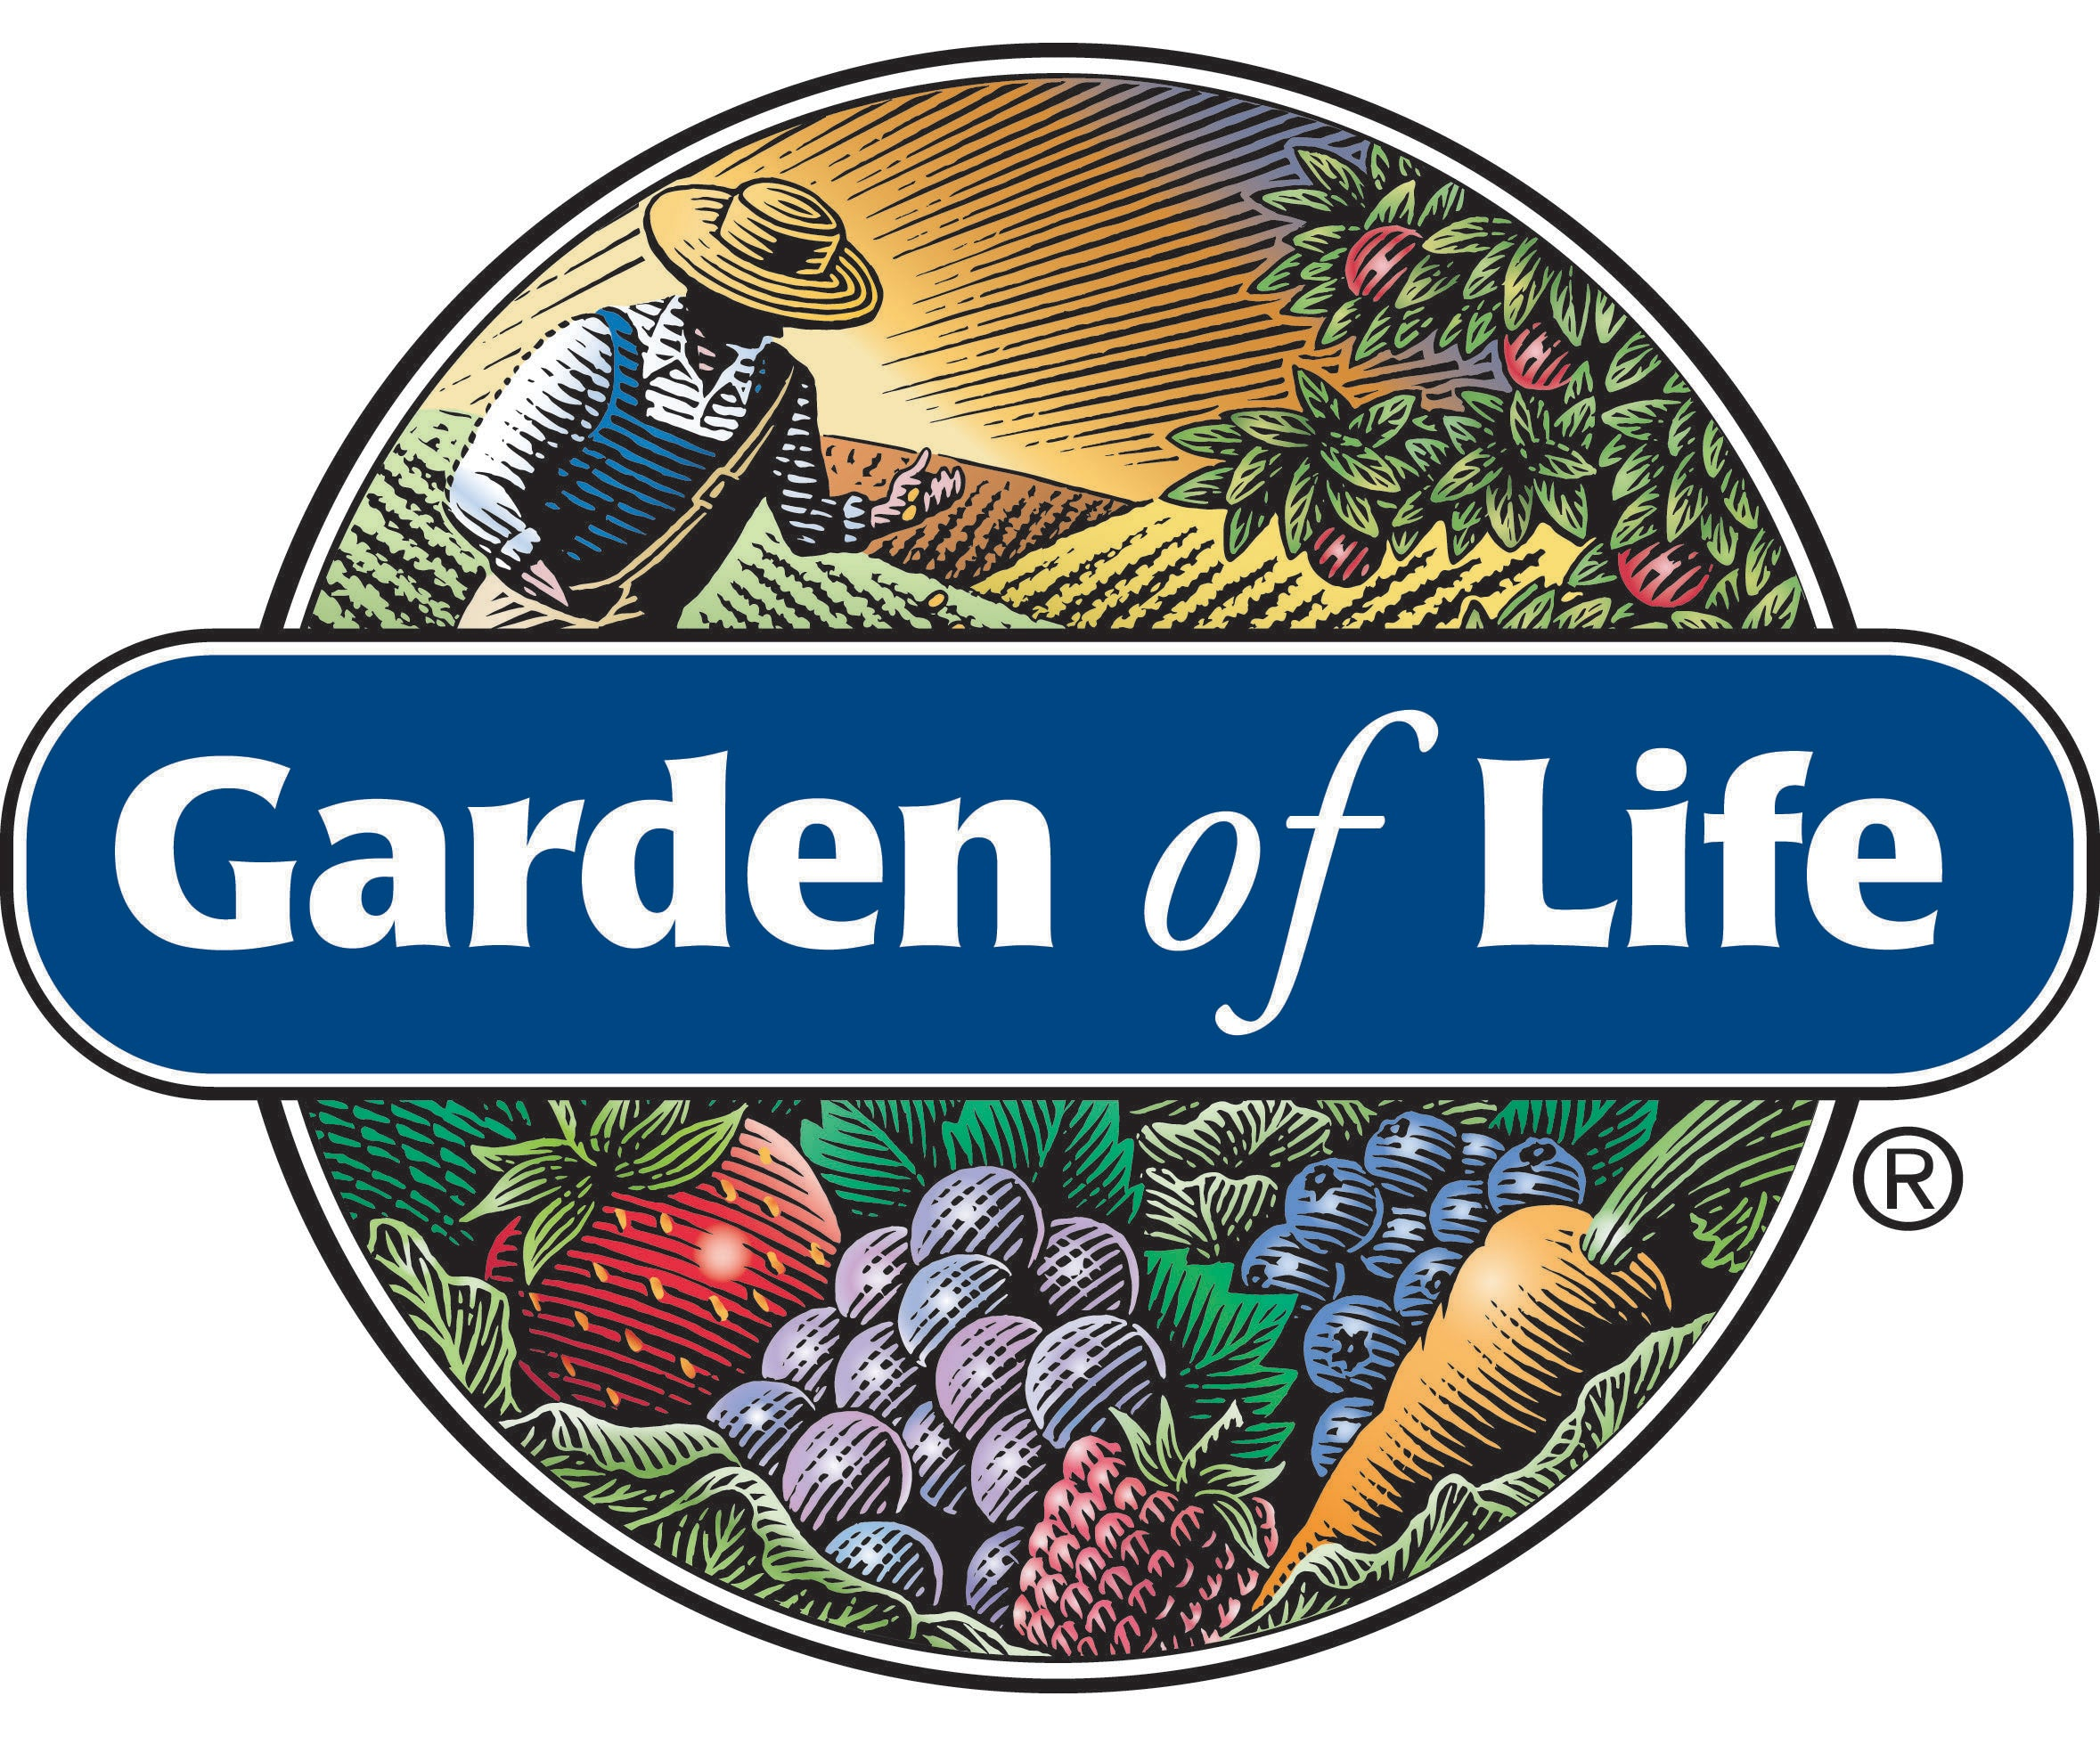 Exceptional Garden Of Lifeu0027s Commitment To Health Goes Beyond Offering Some Of The Most  Effective Nutritional Products In The World. We Are Interested In Building  ... Images